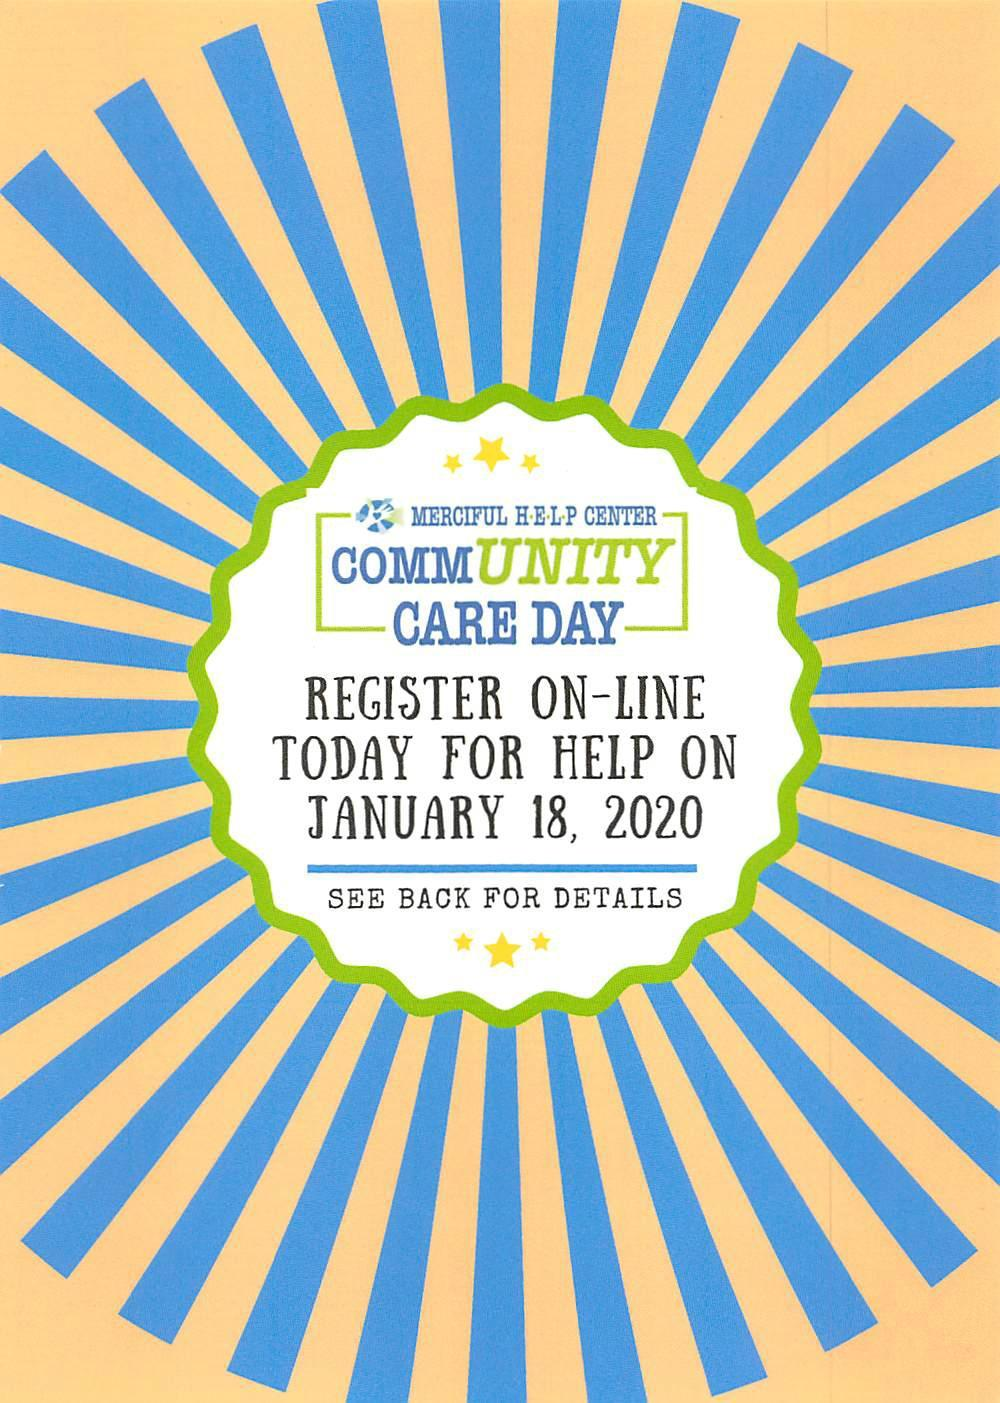 front of the flyer for Community Care Day on January 18. 2020.